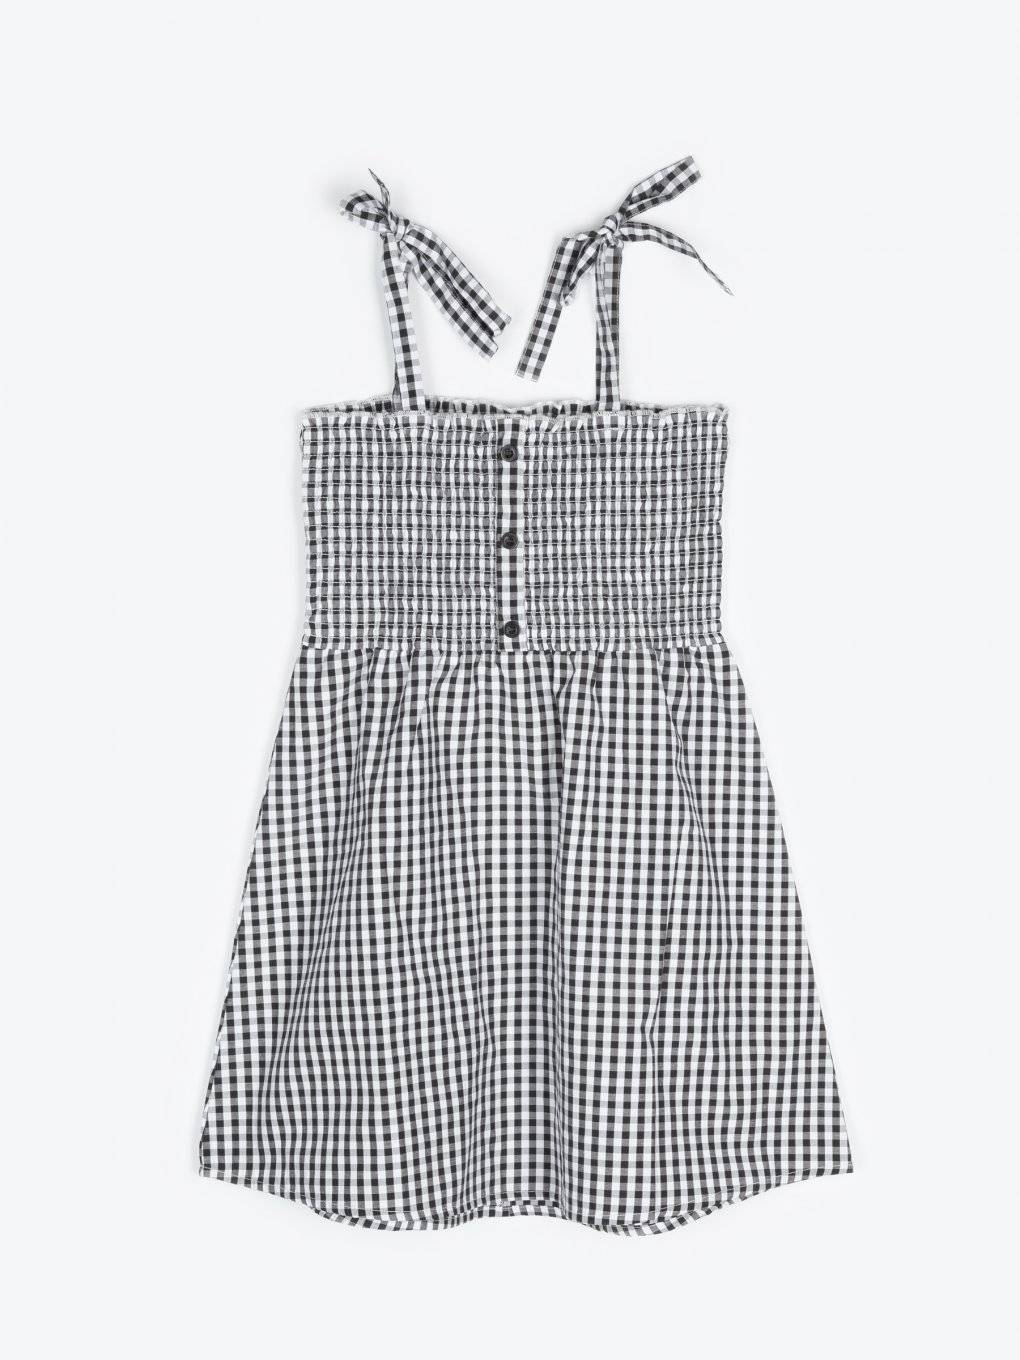 Sleeveless gingham dress